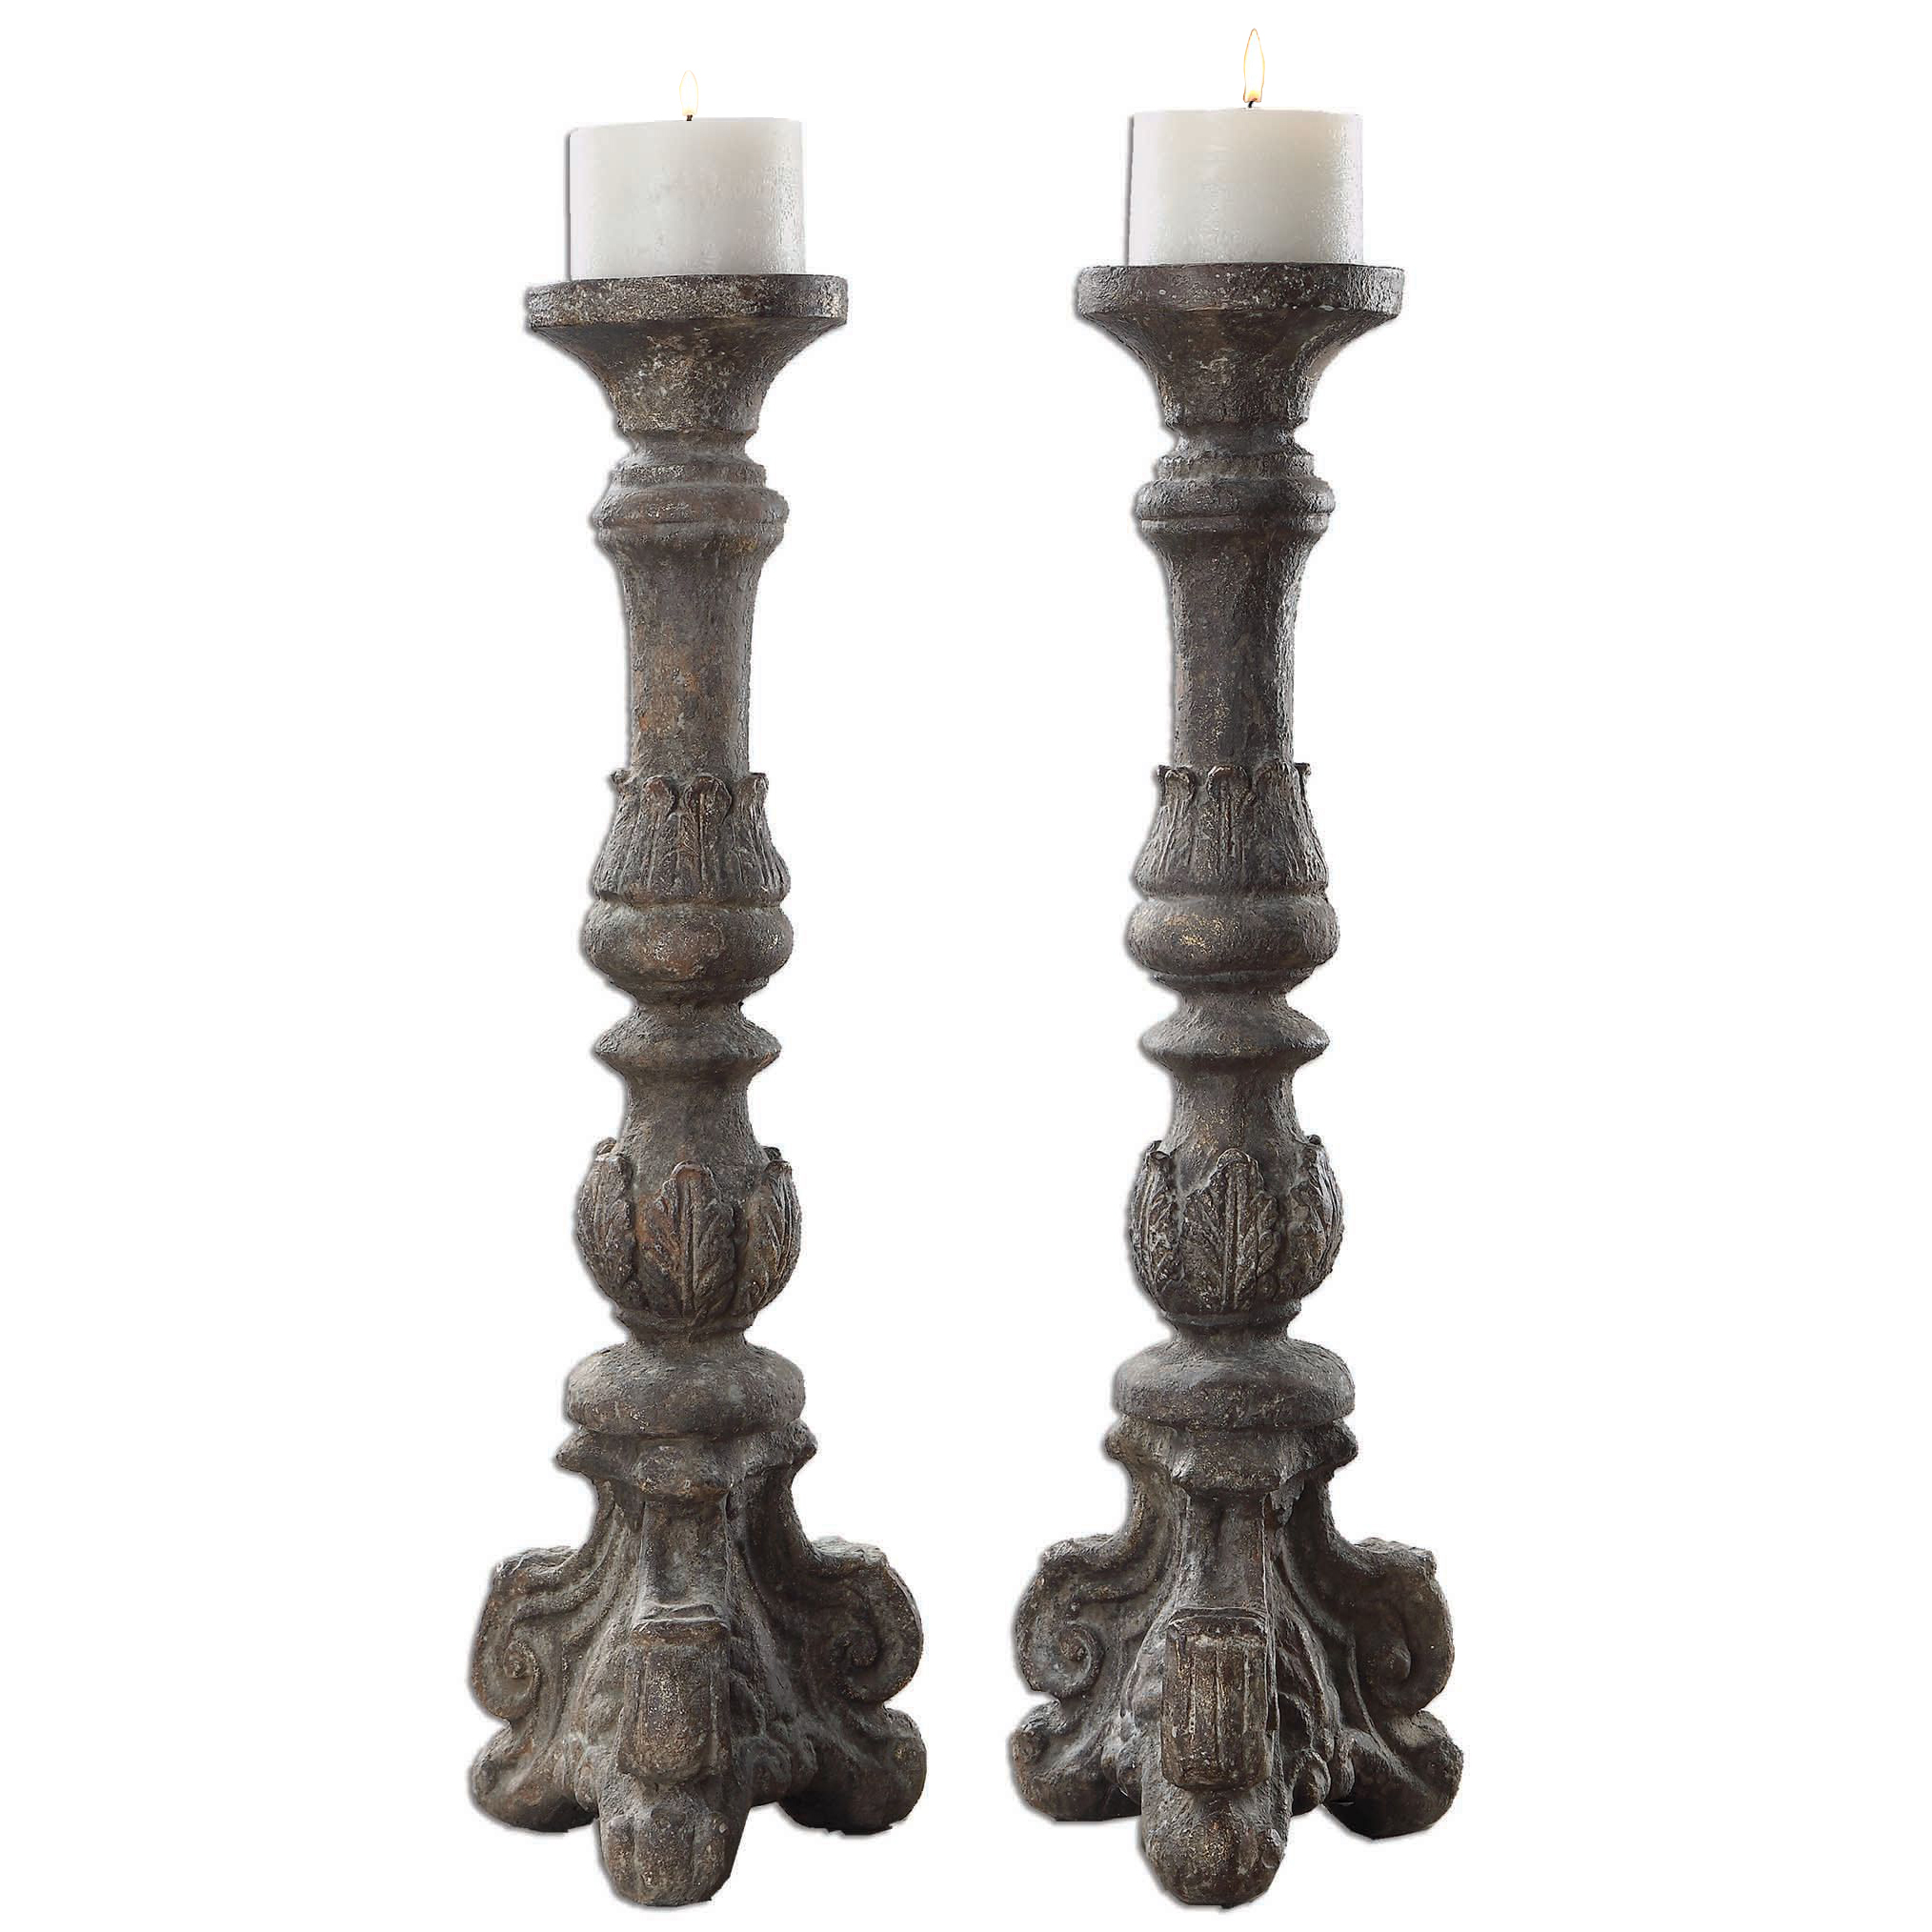 Designer Candleholders - Eclectic Candleholders | Kathy Kuo Home